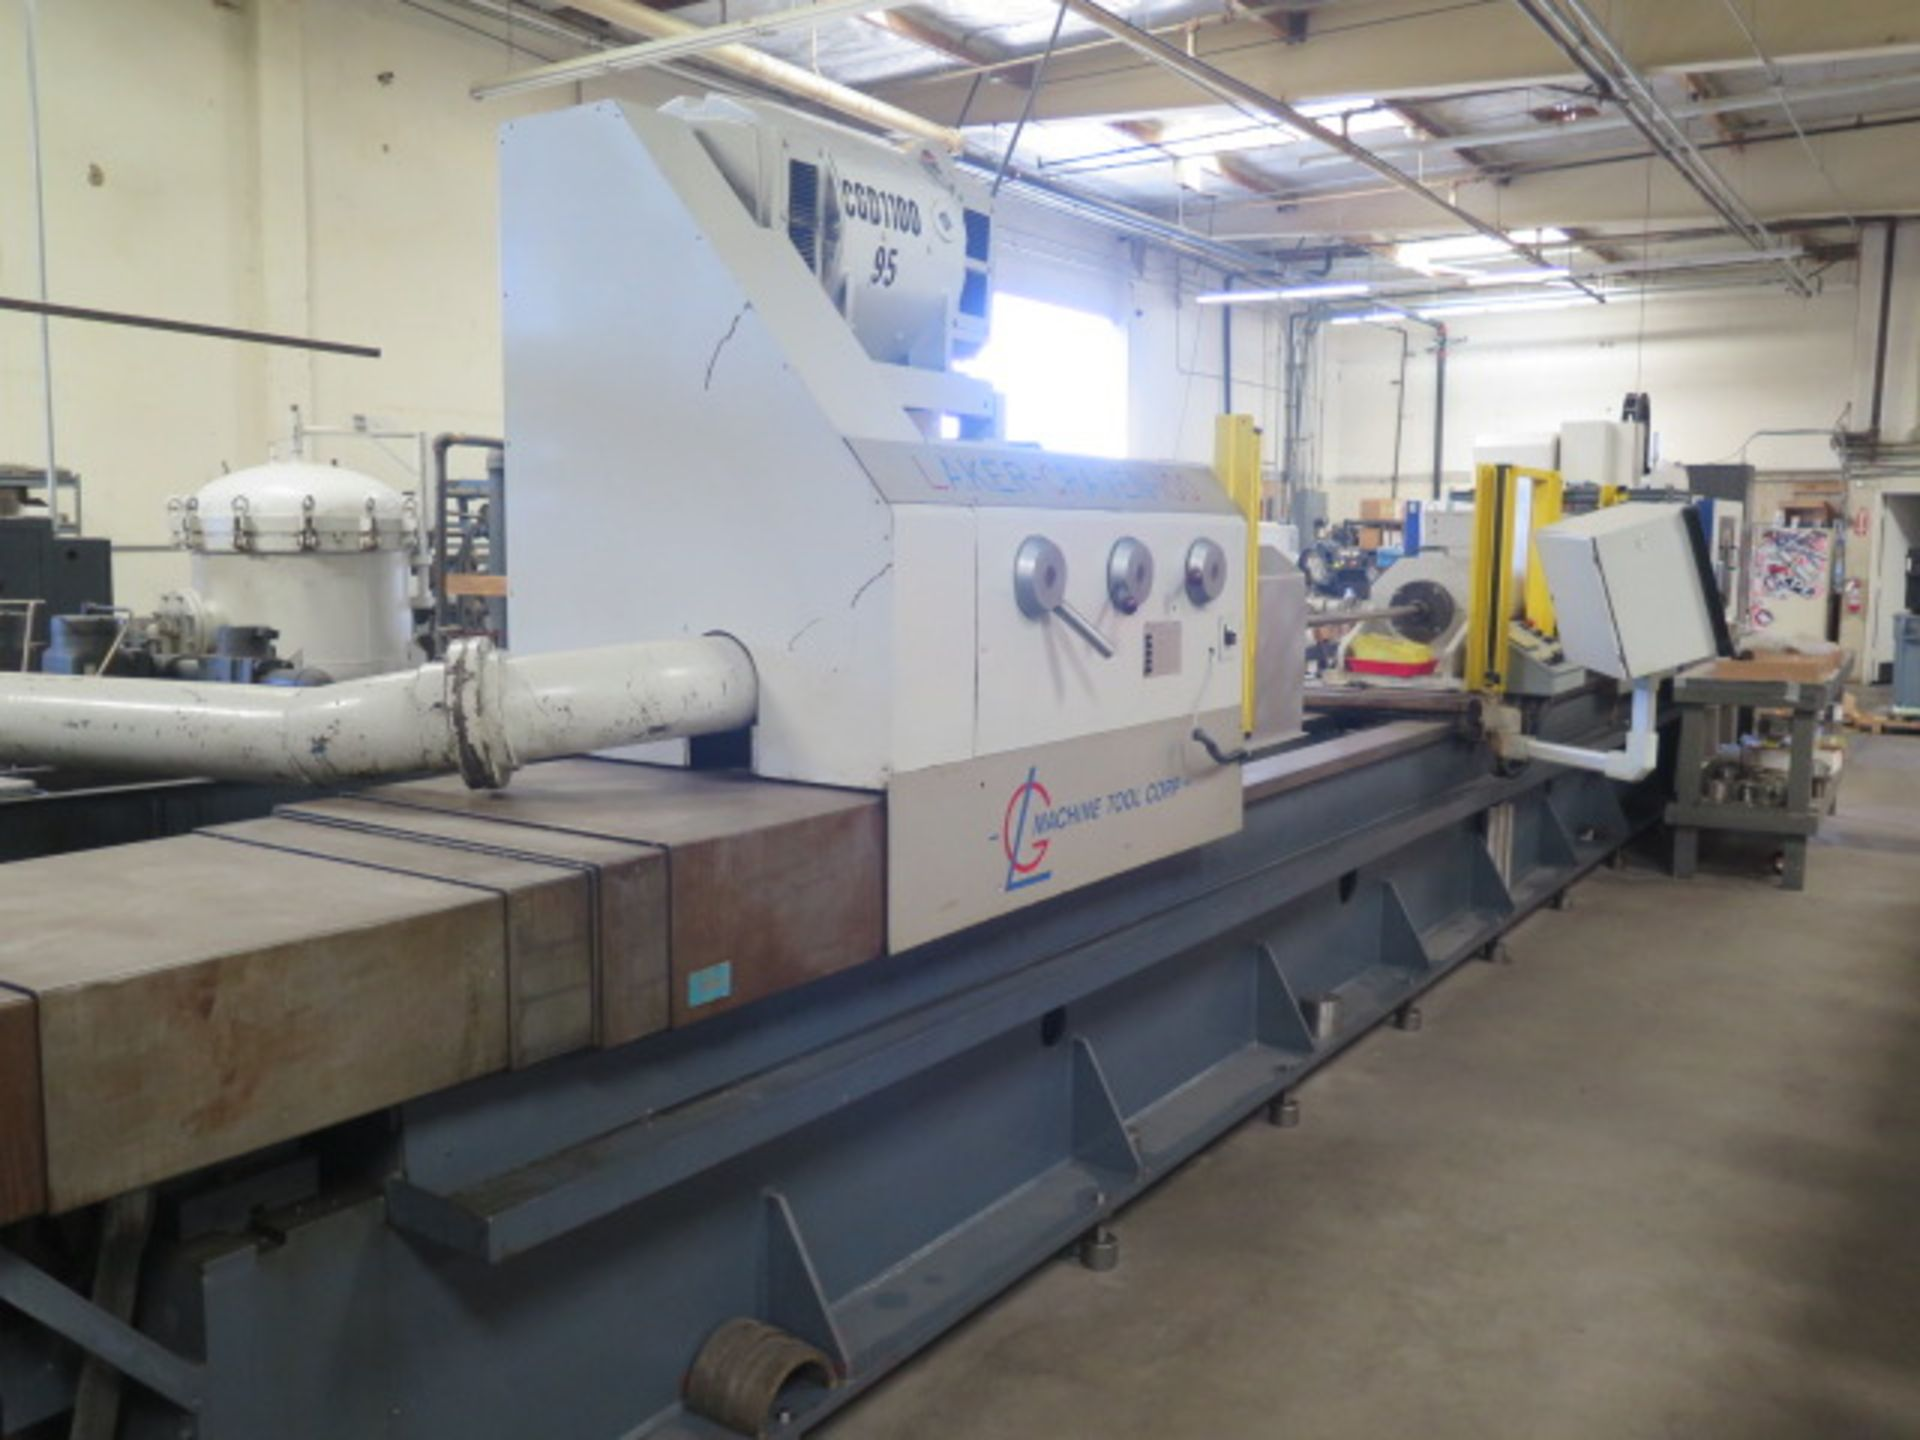 Laker-Craven-100 CNC Deep Hole Drilling Machine s/n 1241 w/ Fanuc Power MATE Controls, SOLD AS IS - Image 2 of 41